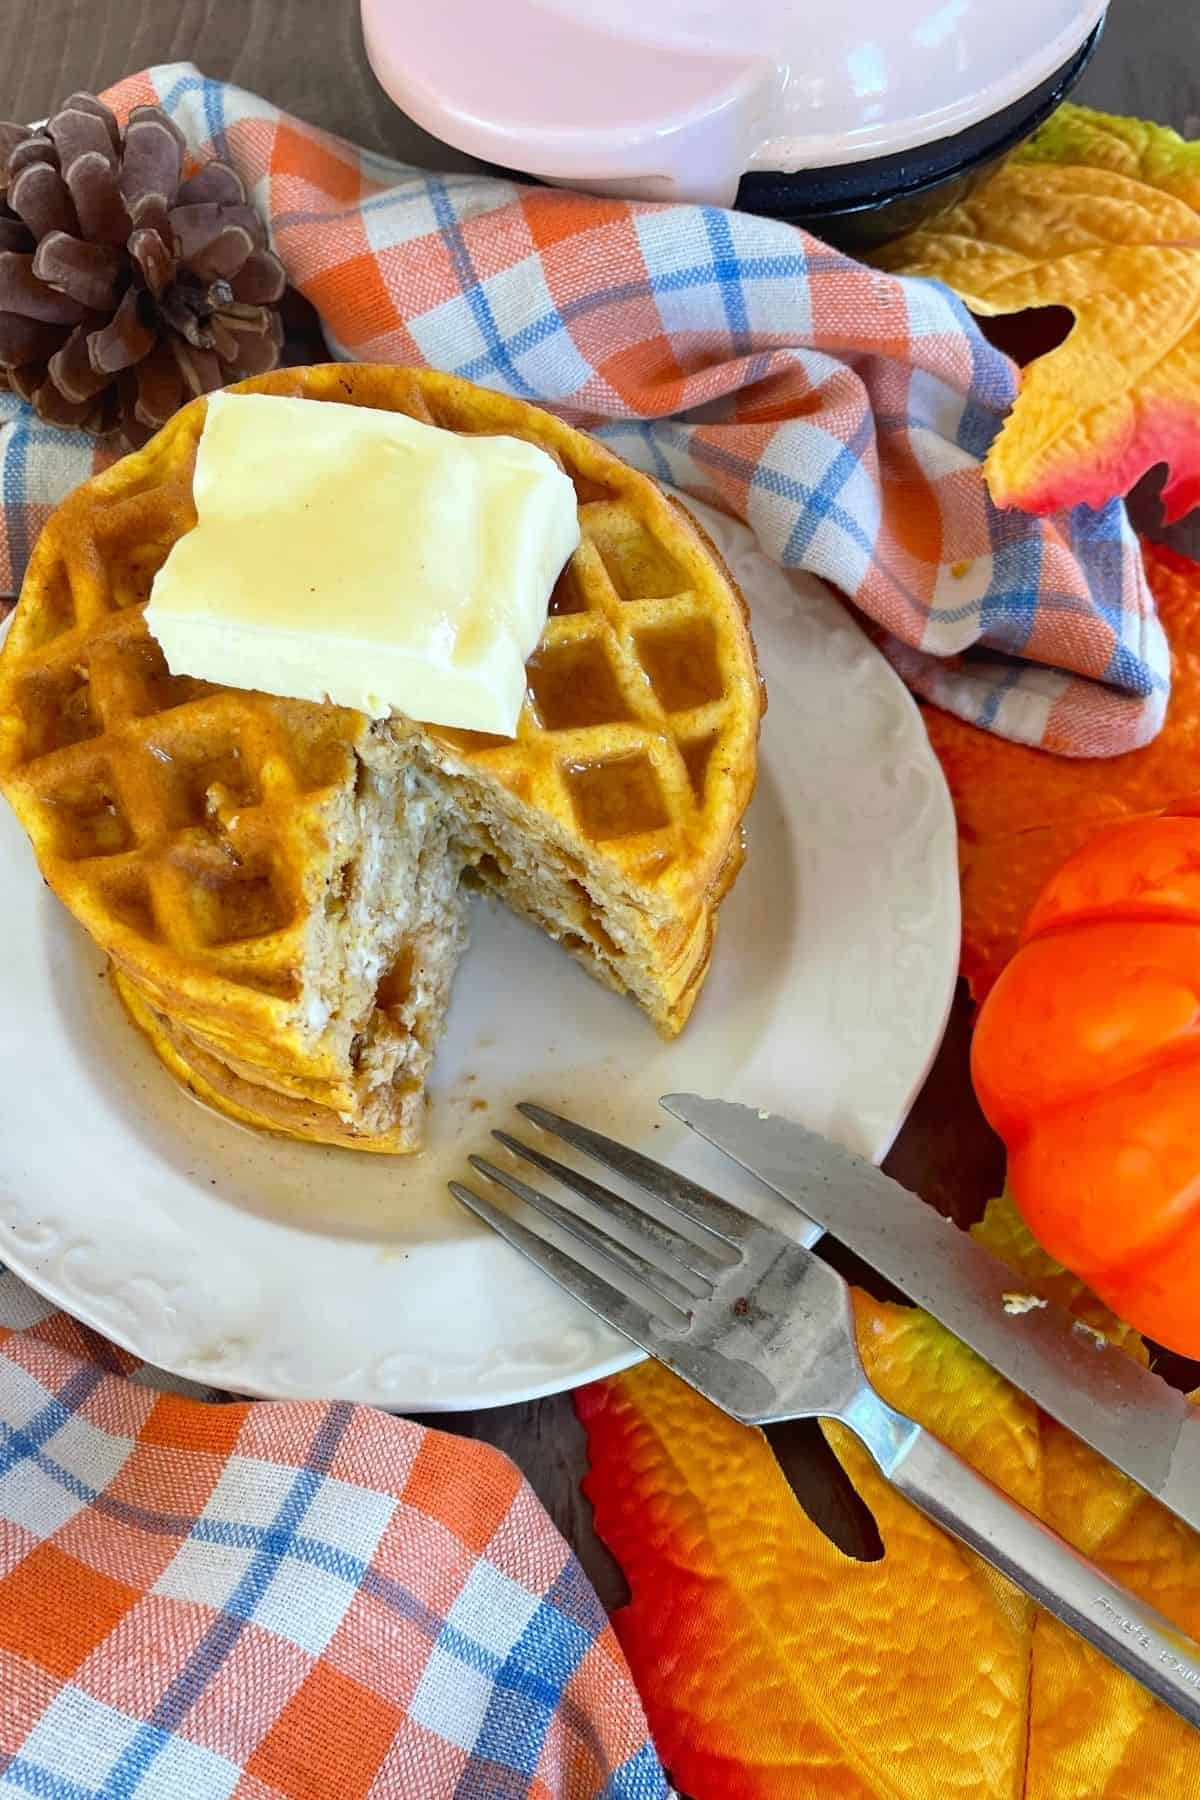 stacked waffles on a plate with a fork and knife, next to a mini pumpkin and the dash waffle iron